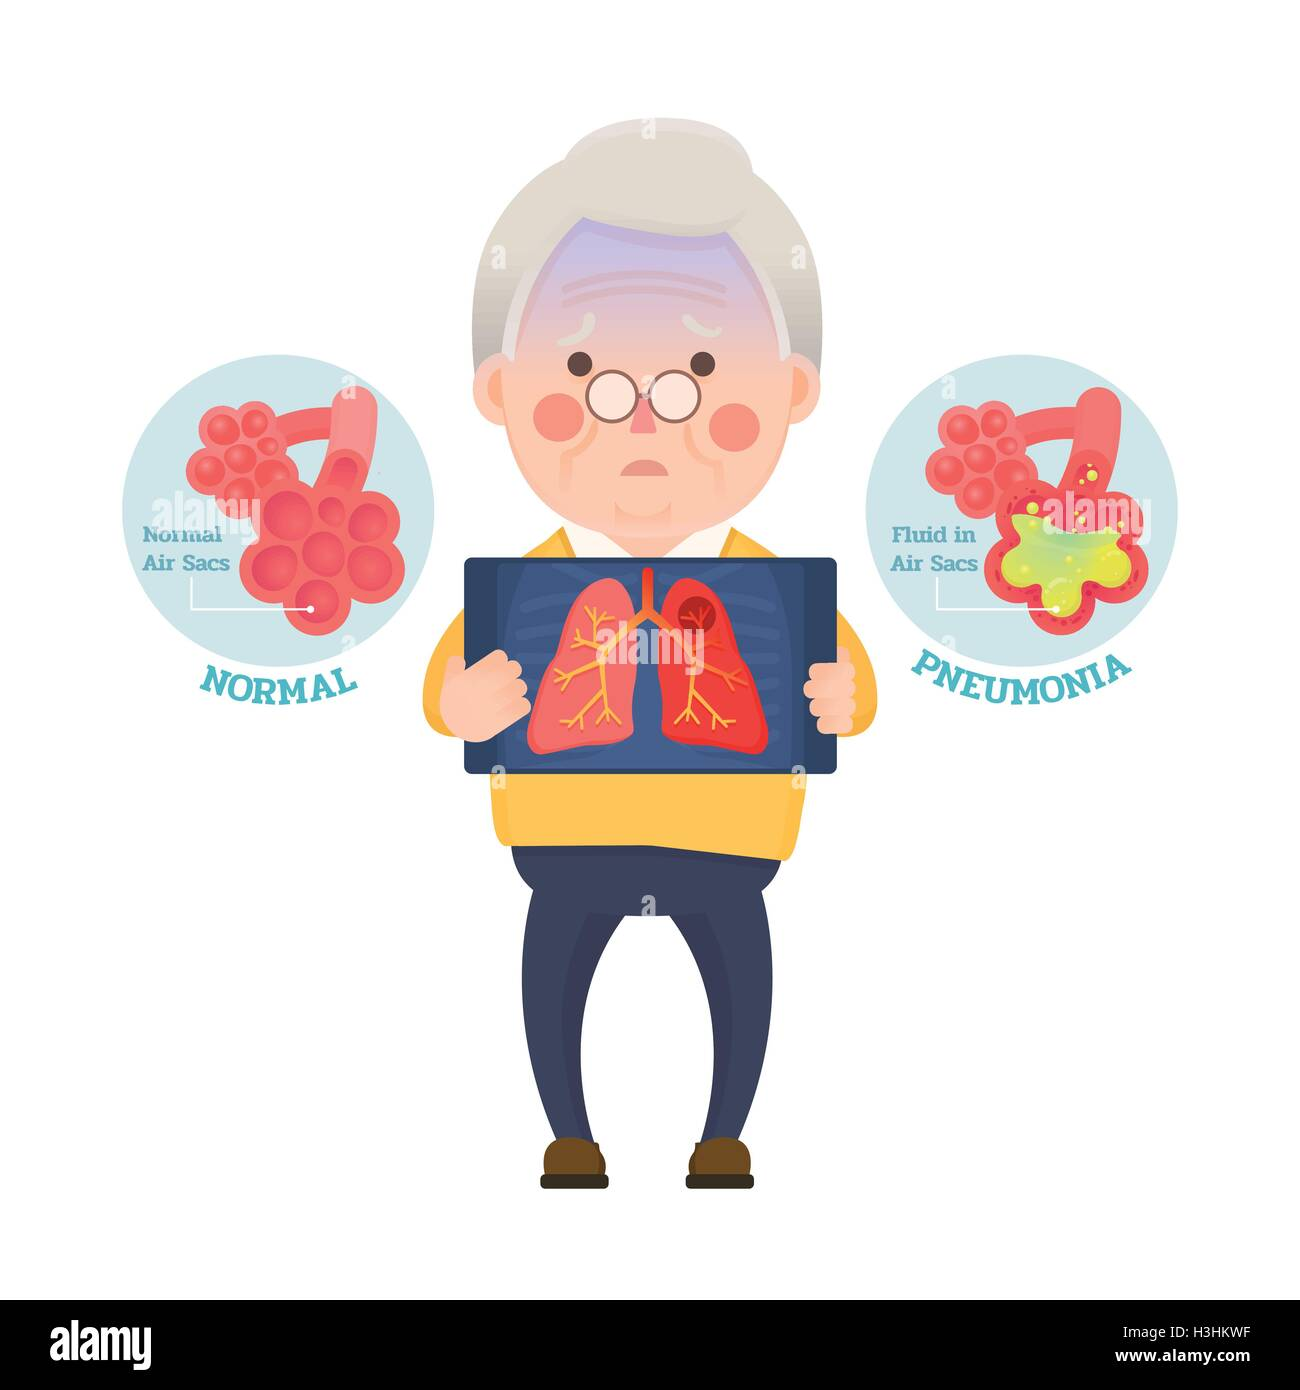 Vector Illustration of Old Man Holding X-ray Image Showing Lung Pneumonia Problem, Cartoon Character - Stock Image